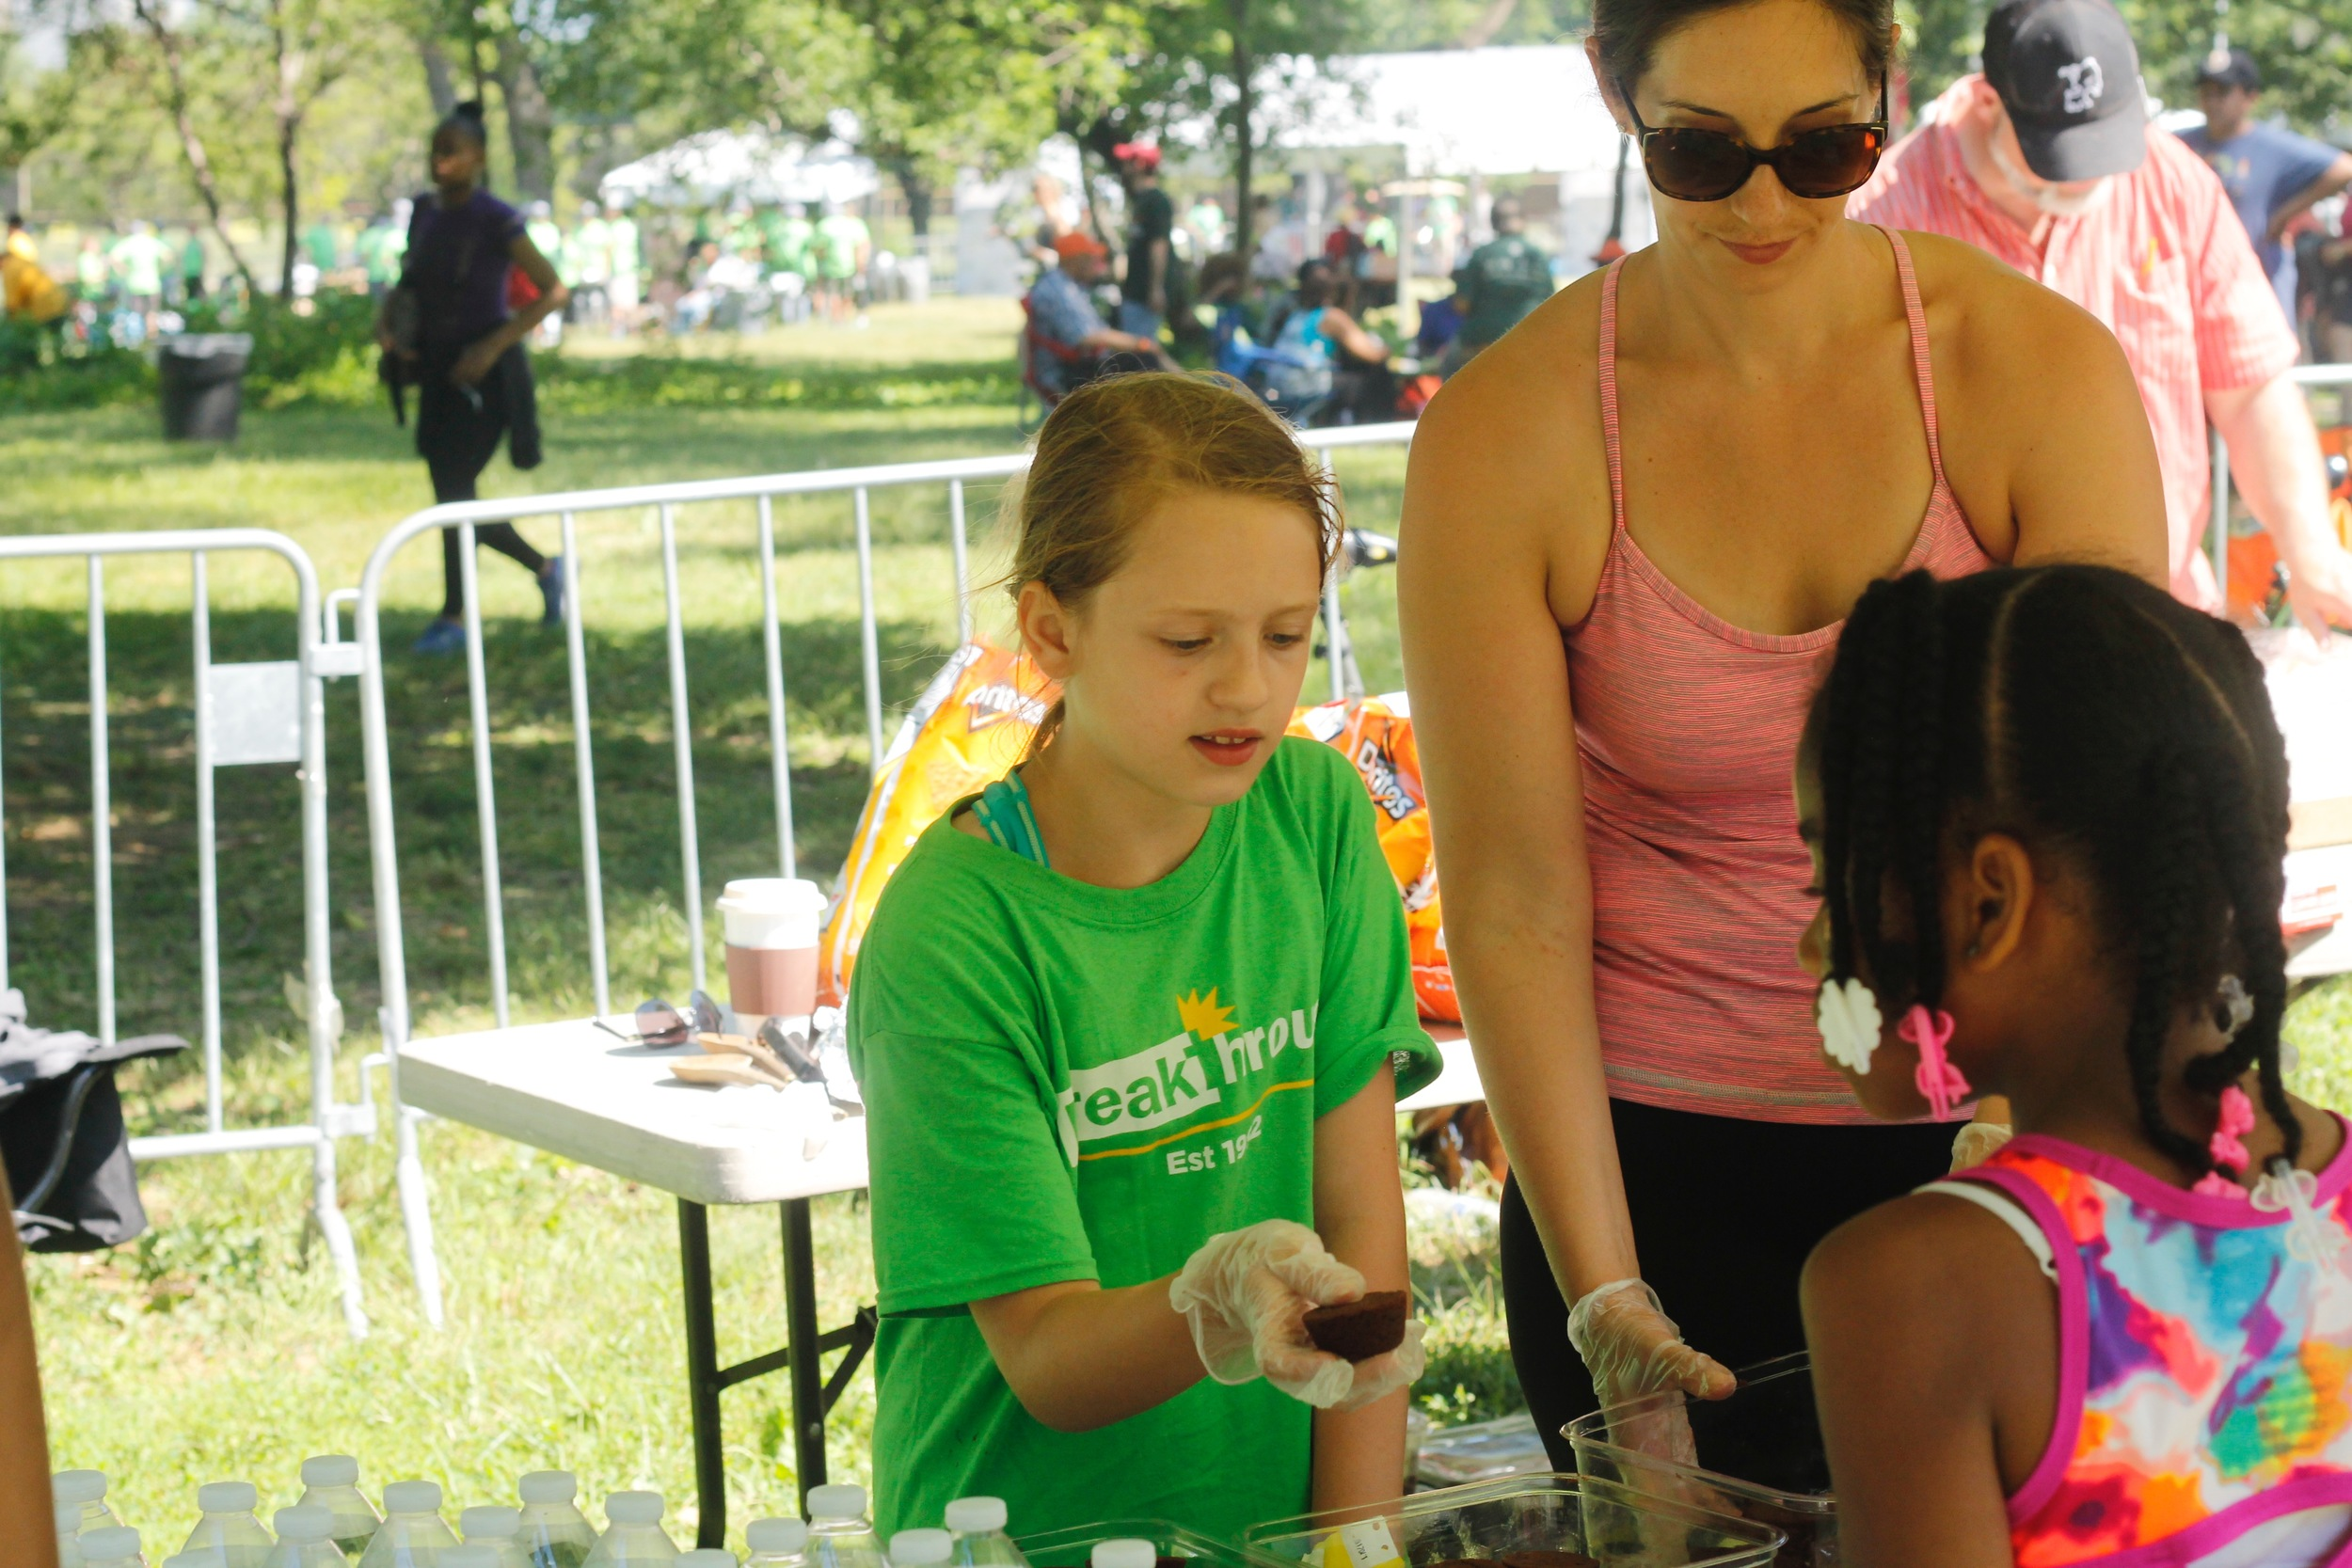 Serving hotdogs, chips, and brownies at the Hunger Walk last Saturday